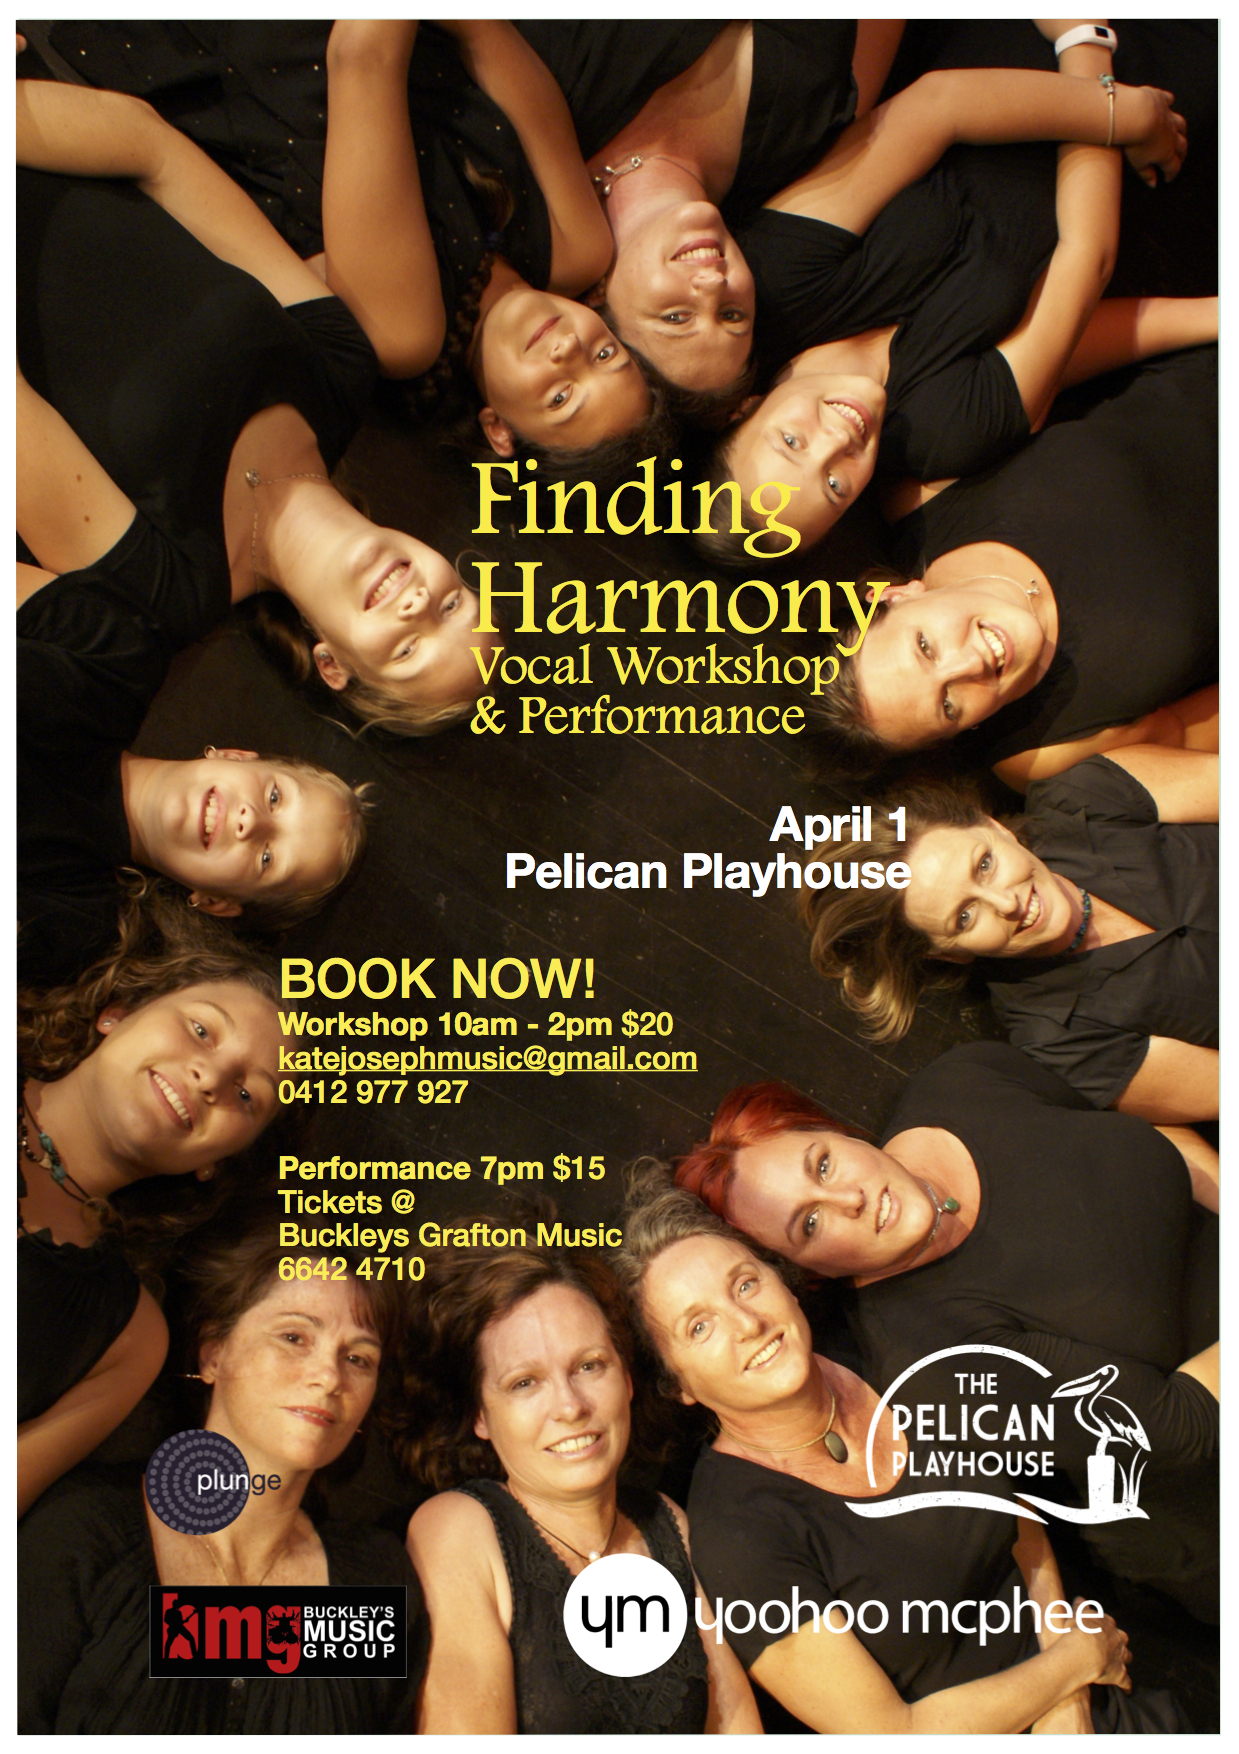 Finding Harmony Poster A4.jpg